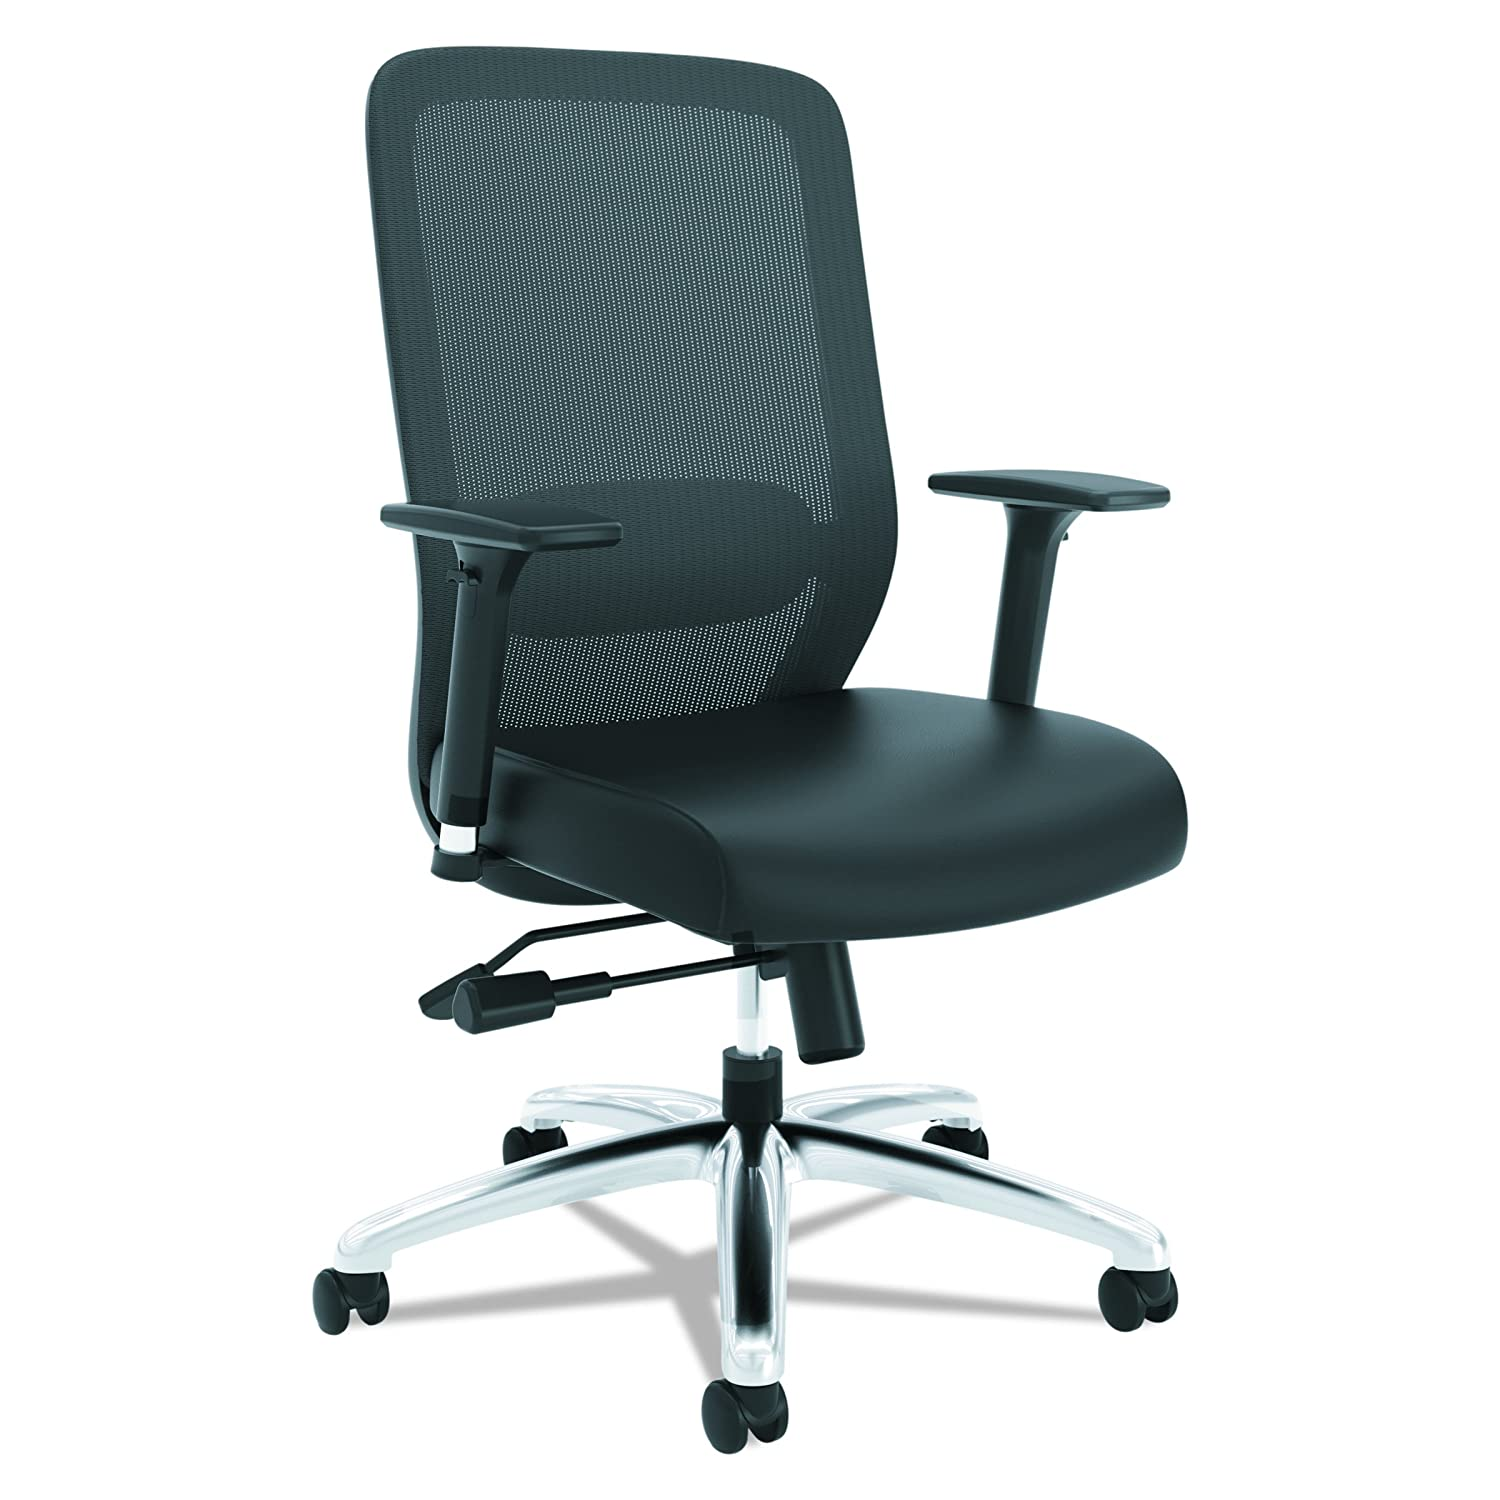 Basyx by HON Big and Tall Office Computer Chair